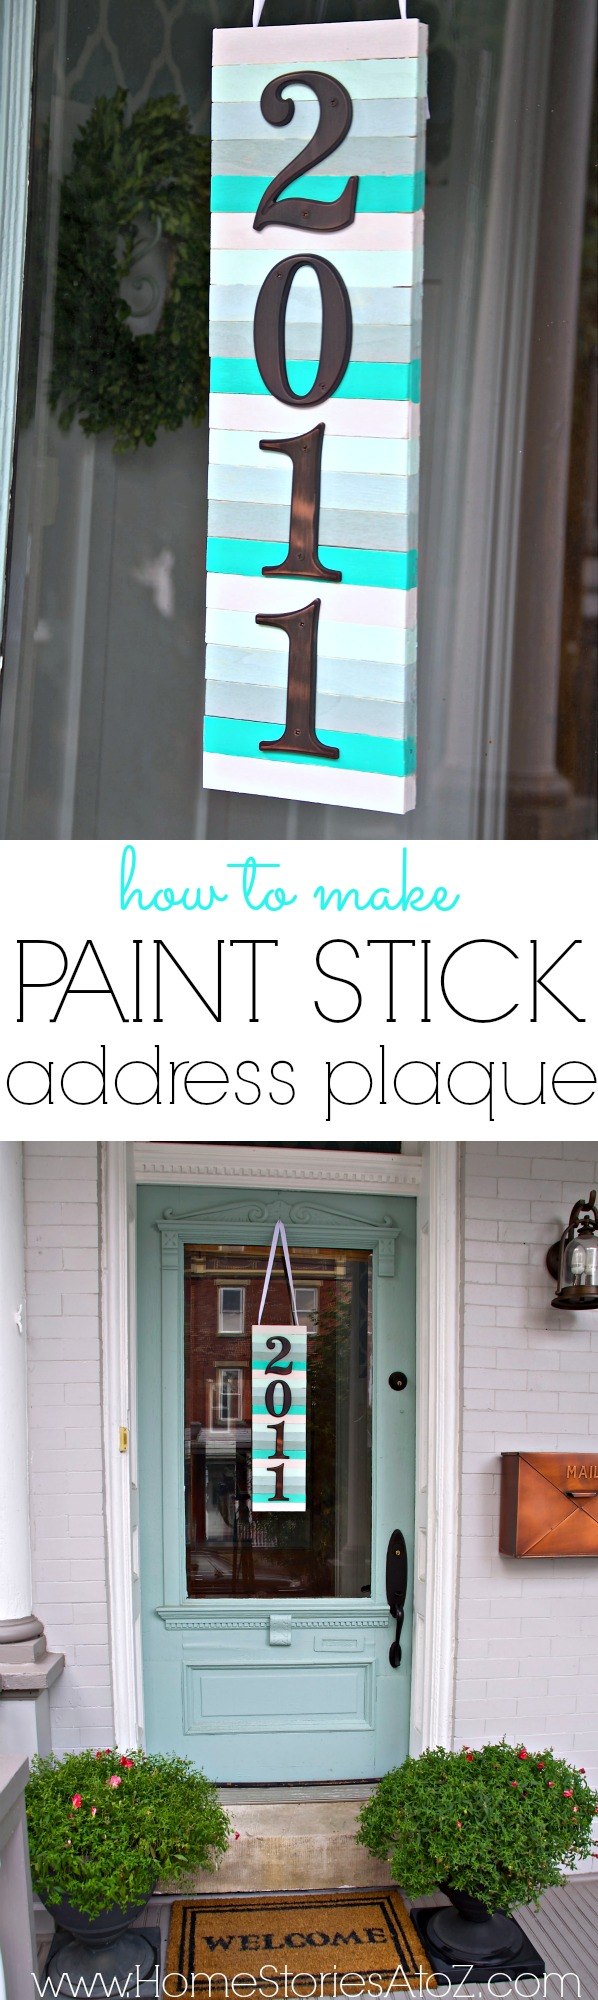 Paint stick address plaque